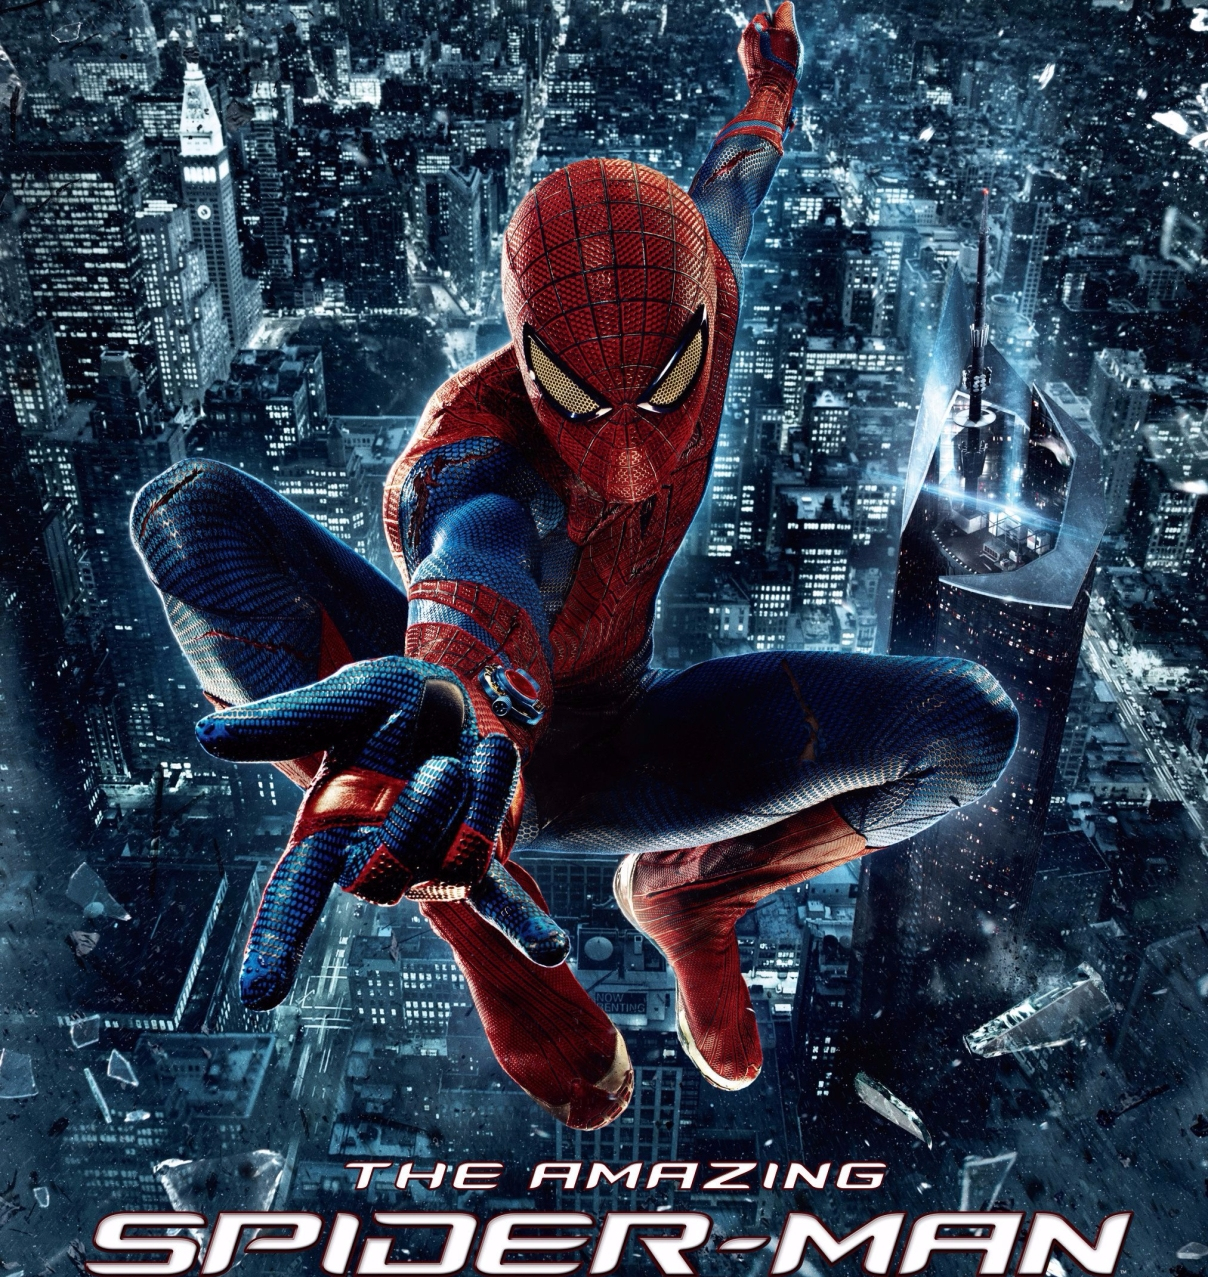 the-amazing-spider-man-new-poster-e1500055052961.jpg